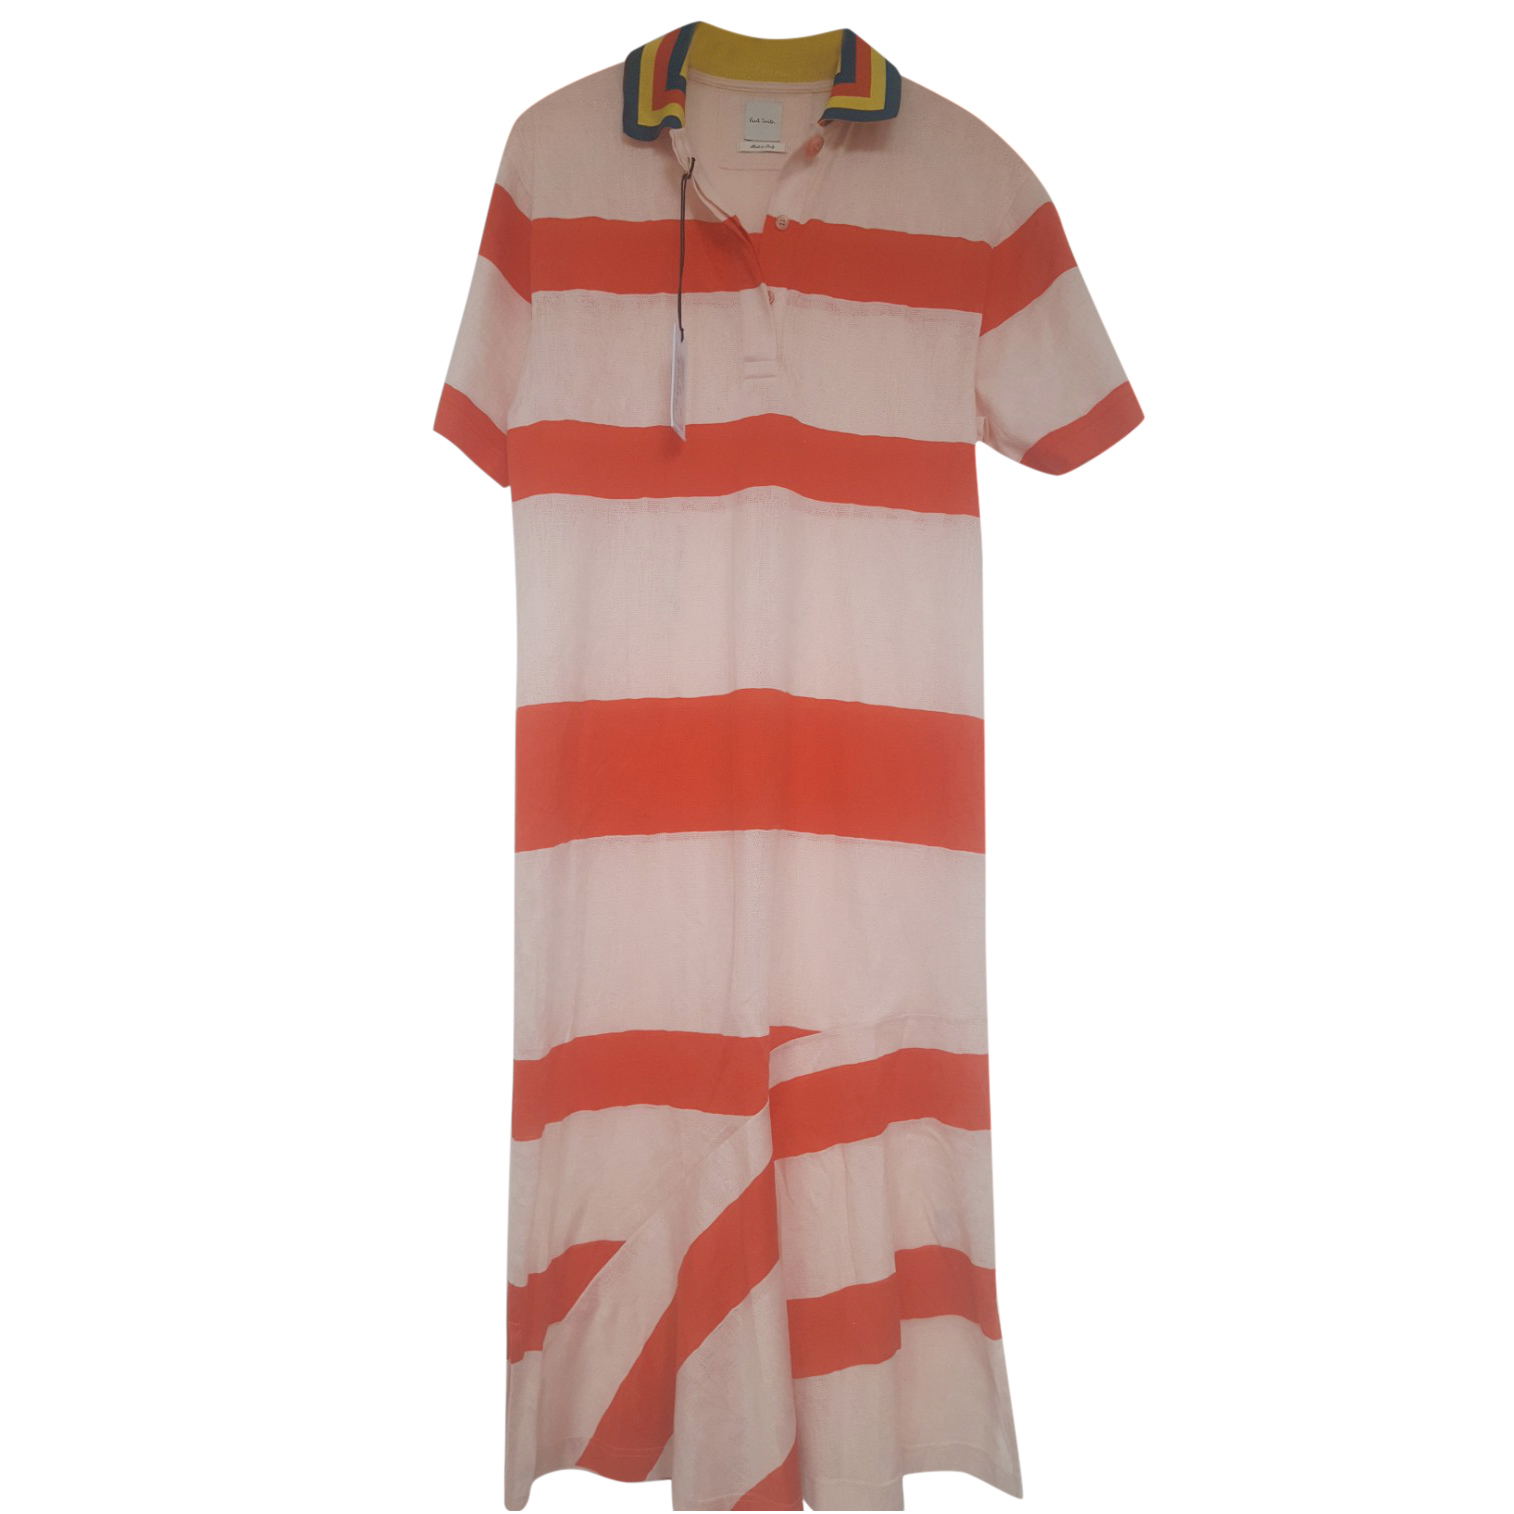 Paul Smith Striped Polo Dress